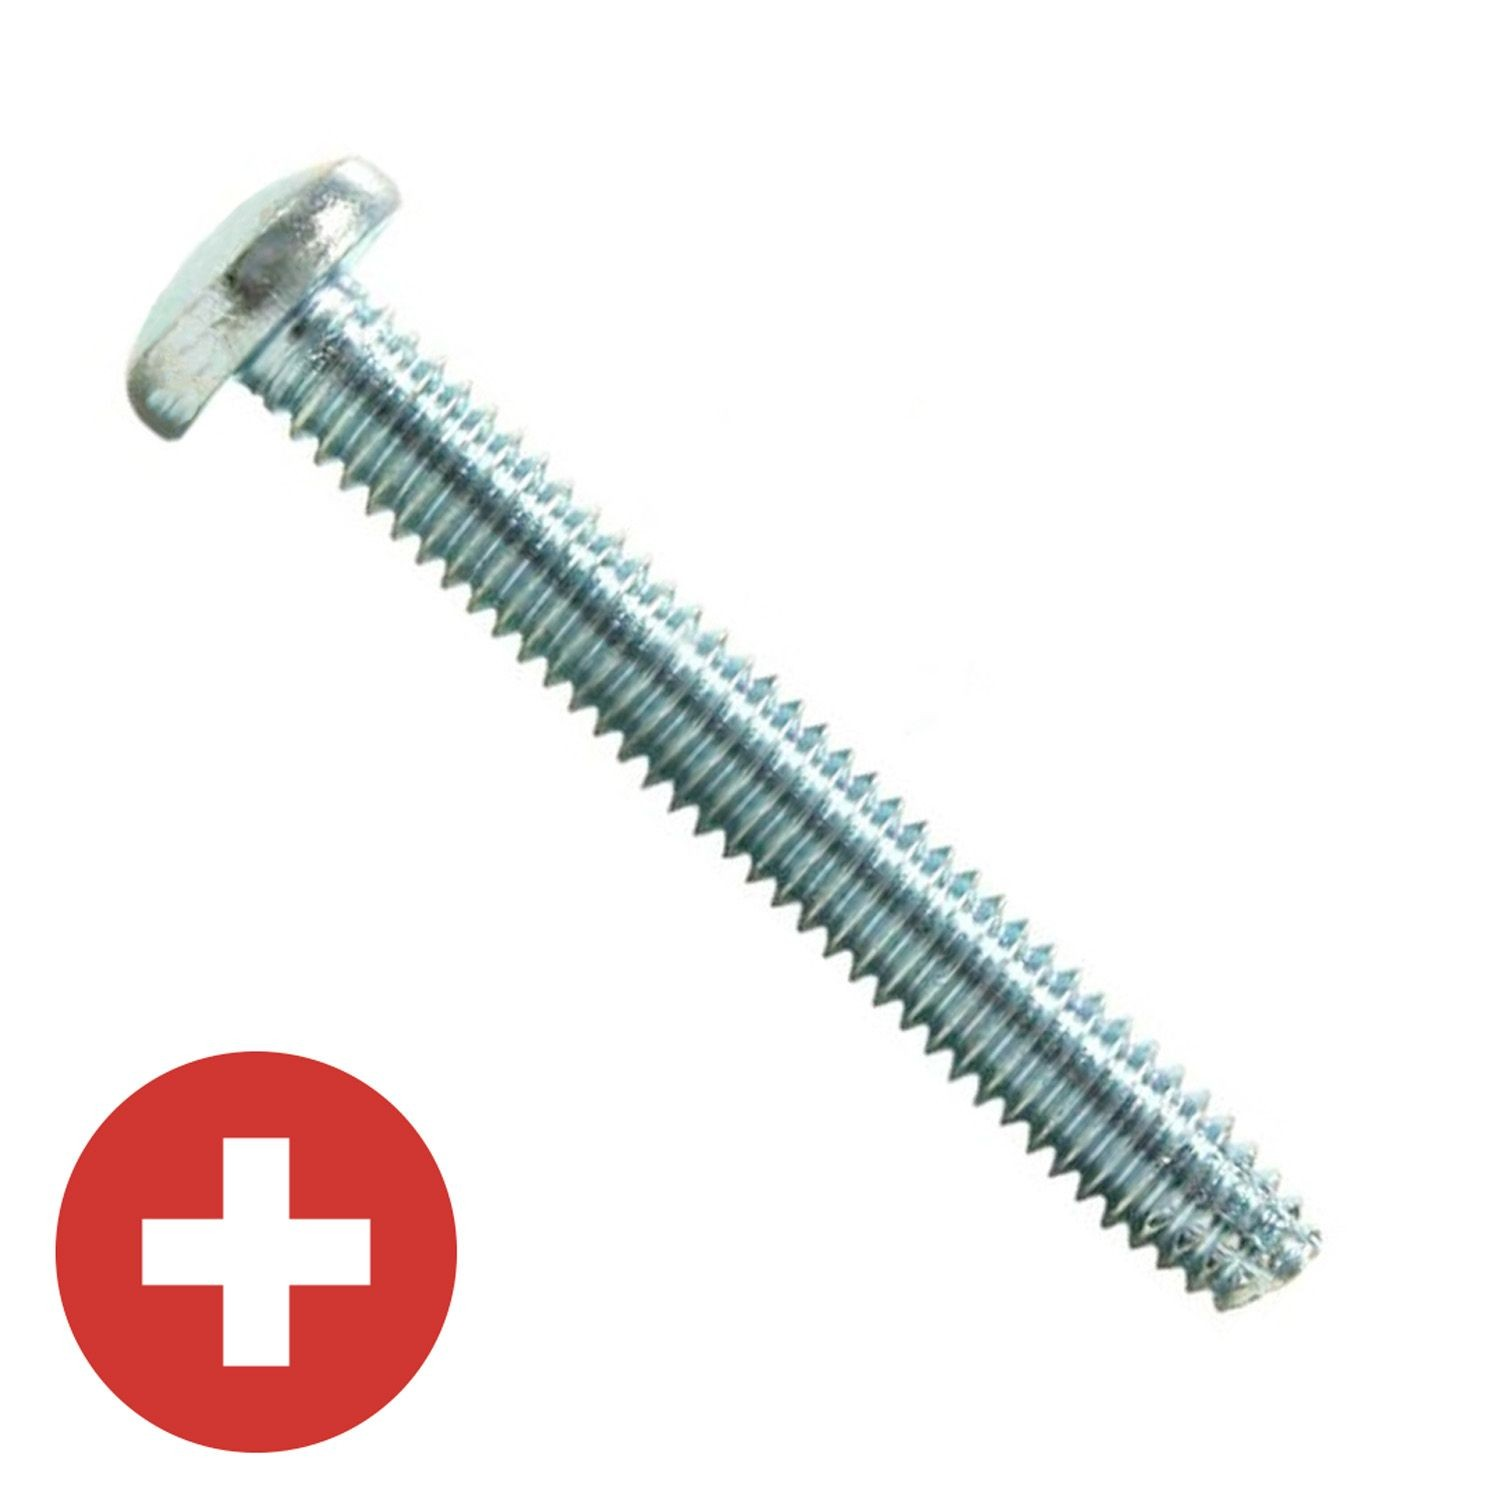 "#10-24 x 3/4"" Zinc Plated Phillips Pan Head Thread Cutting Screw Type F"